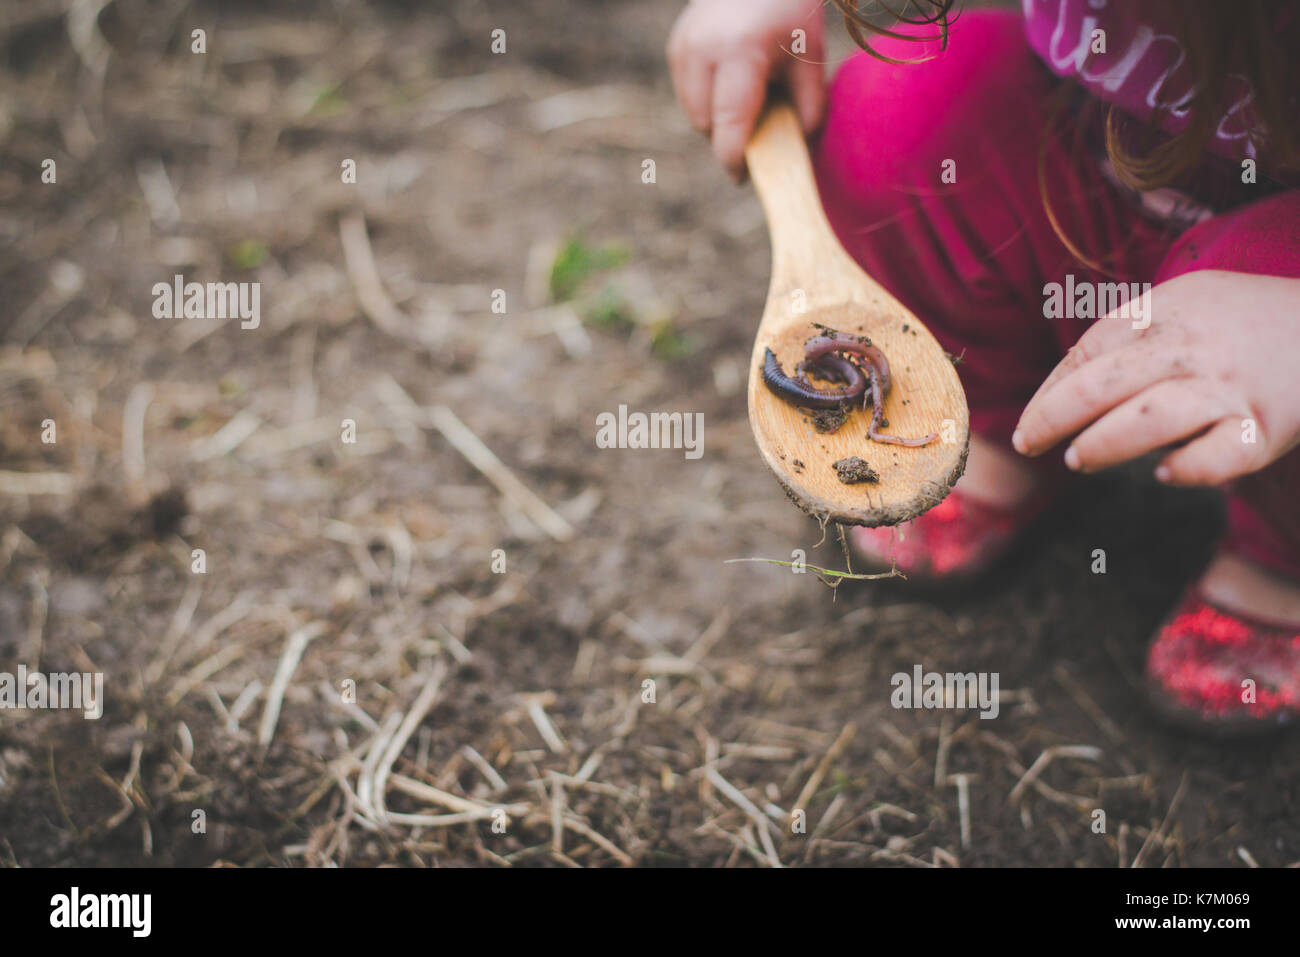 A child plays with a worm on a wooden spoon in a garden. - Stock Image